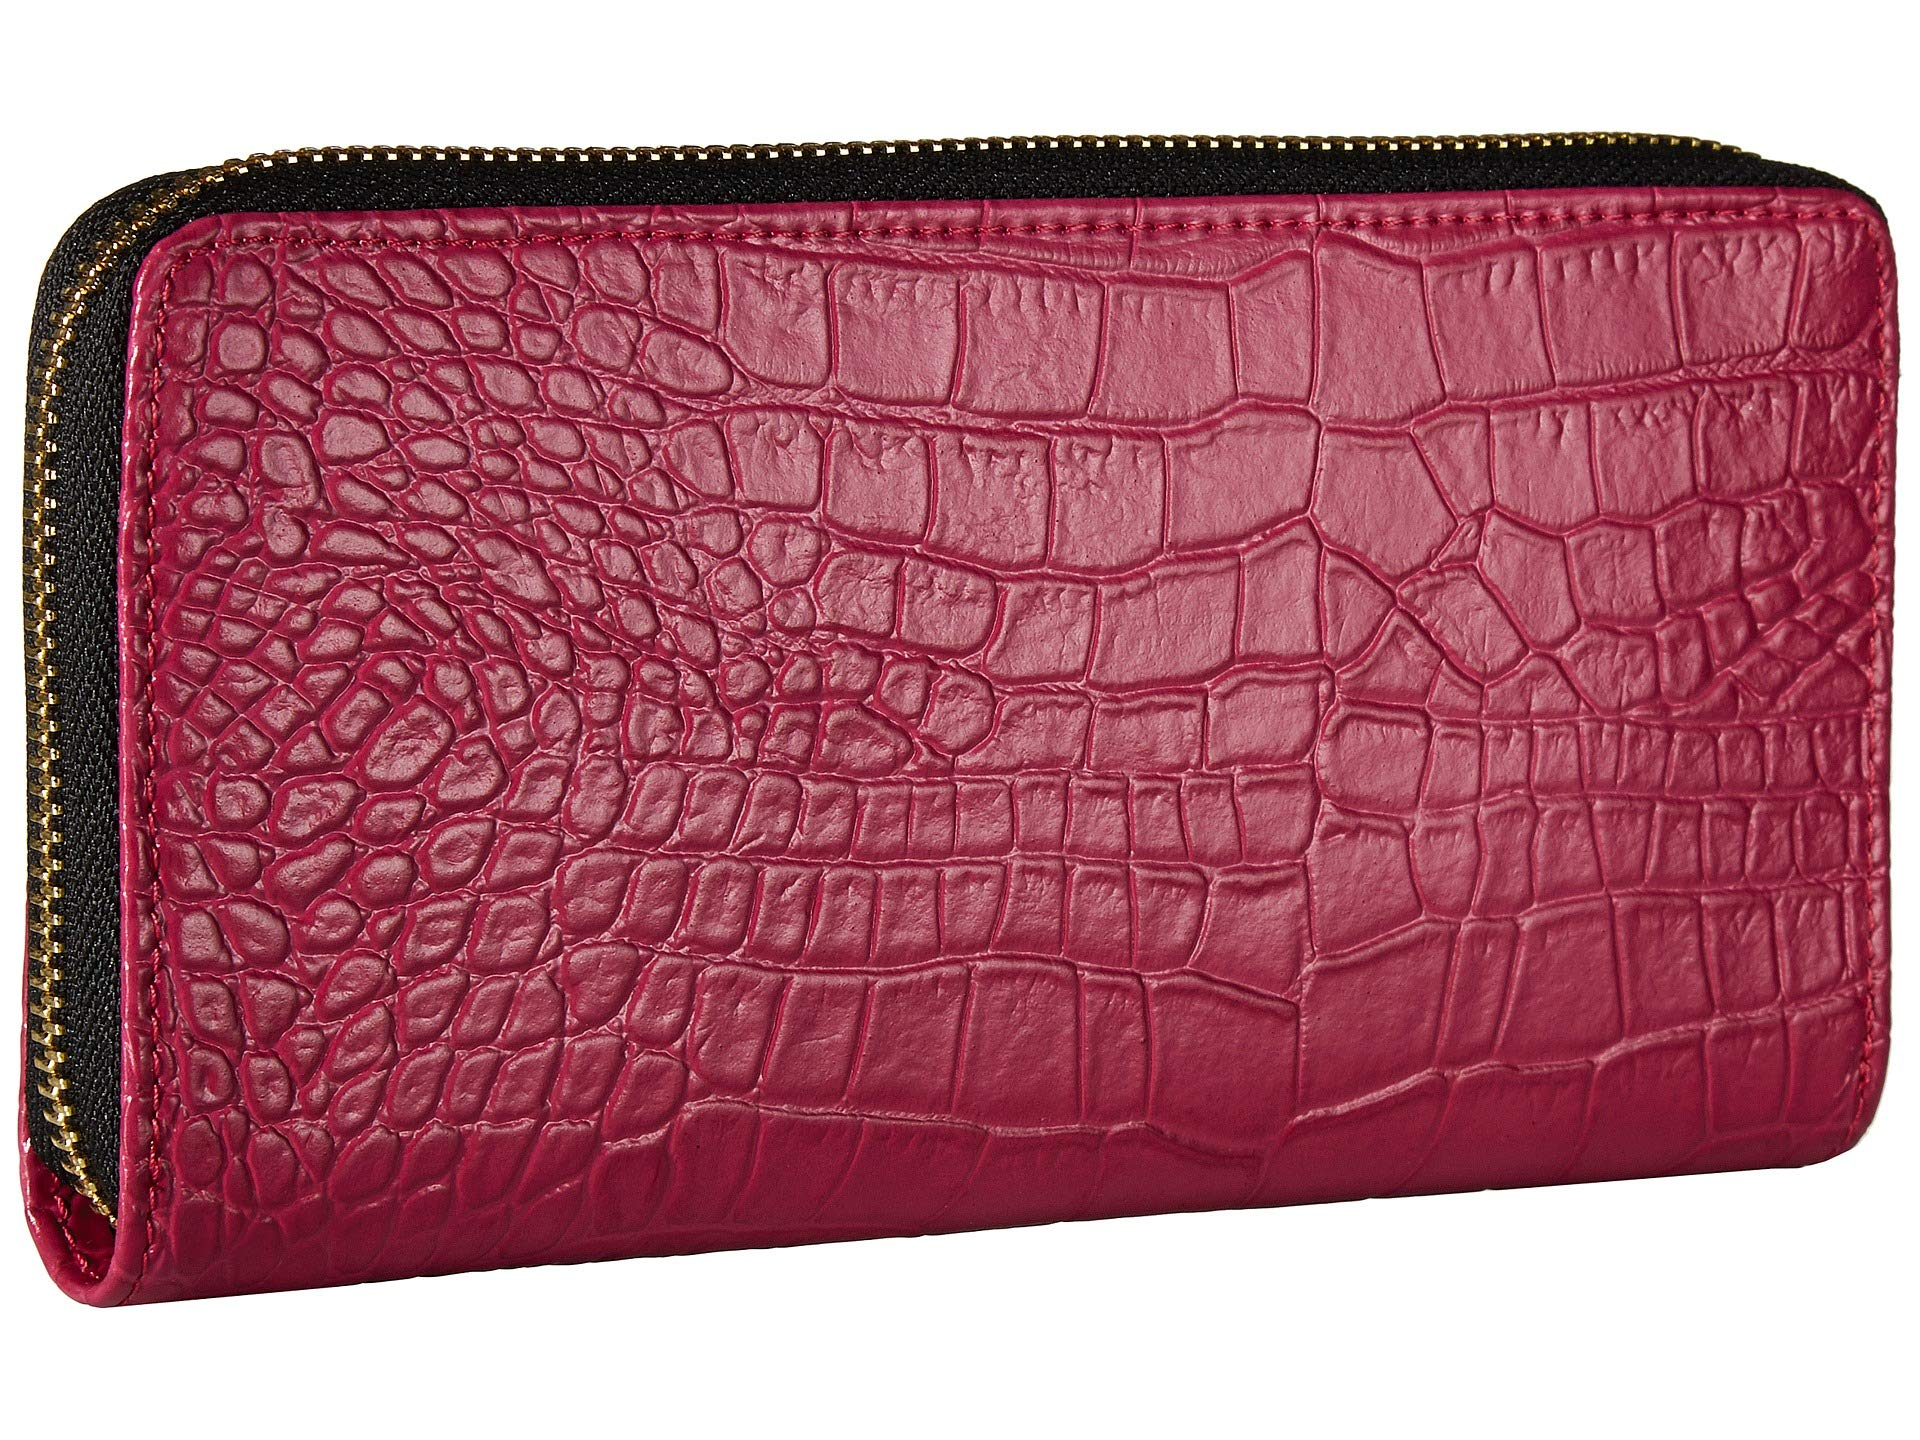 Around Geiger Kurt London Wallet Zip Fuchsia aq0nUBYW